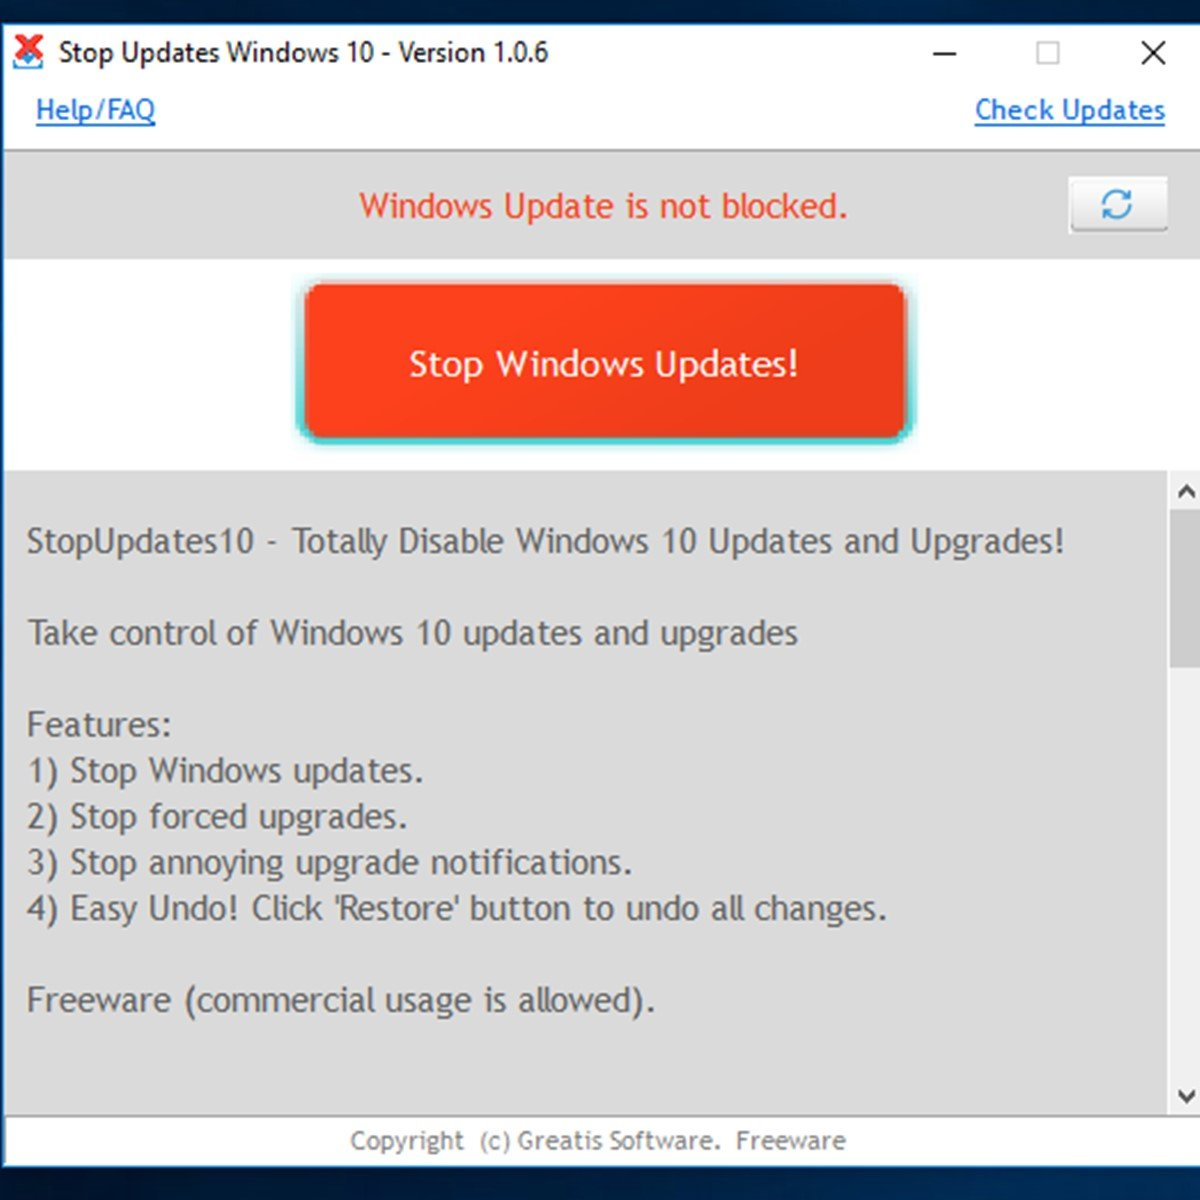 StopUpdates10 Alternatives and Similar Software